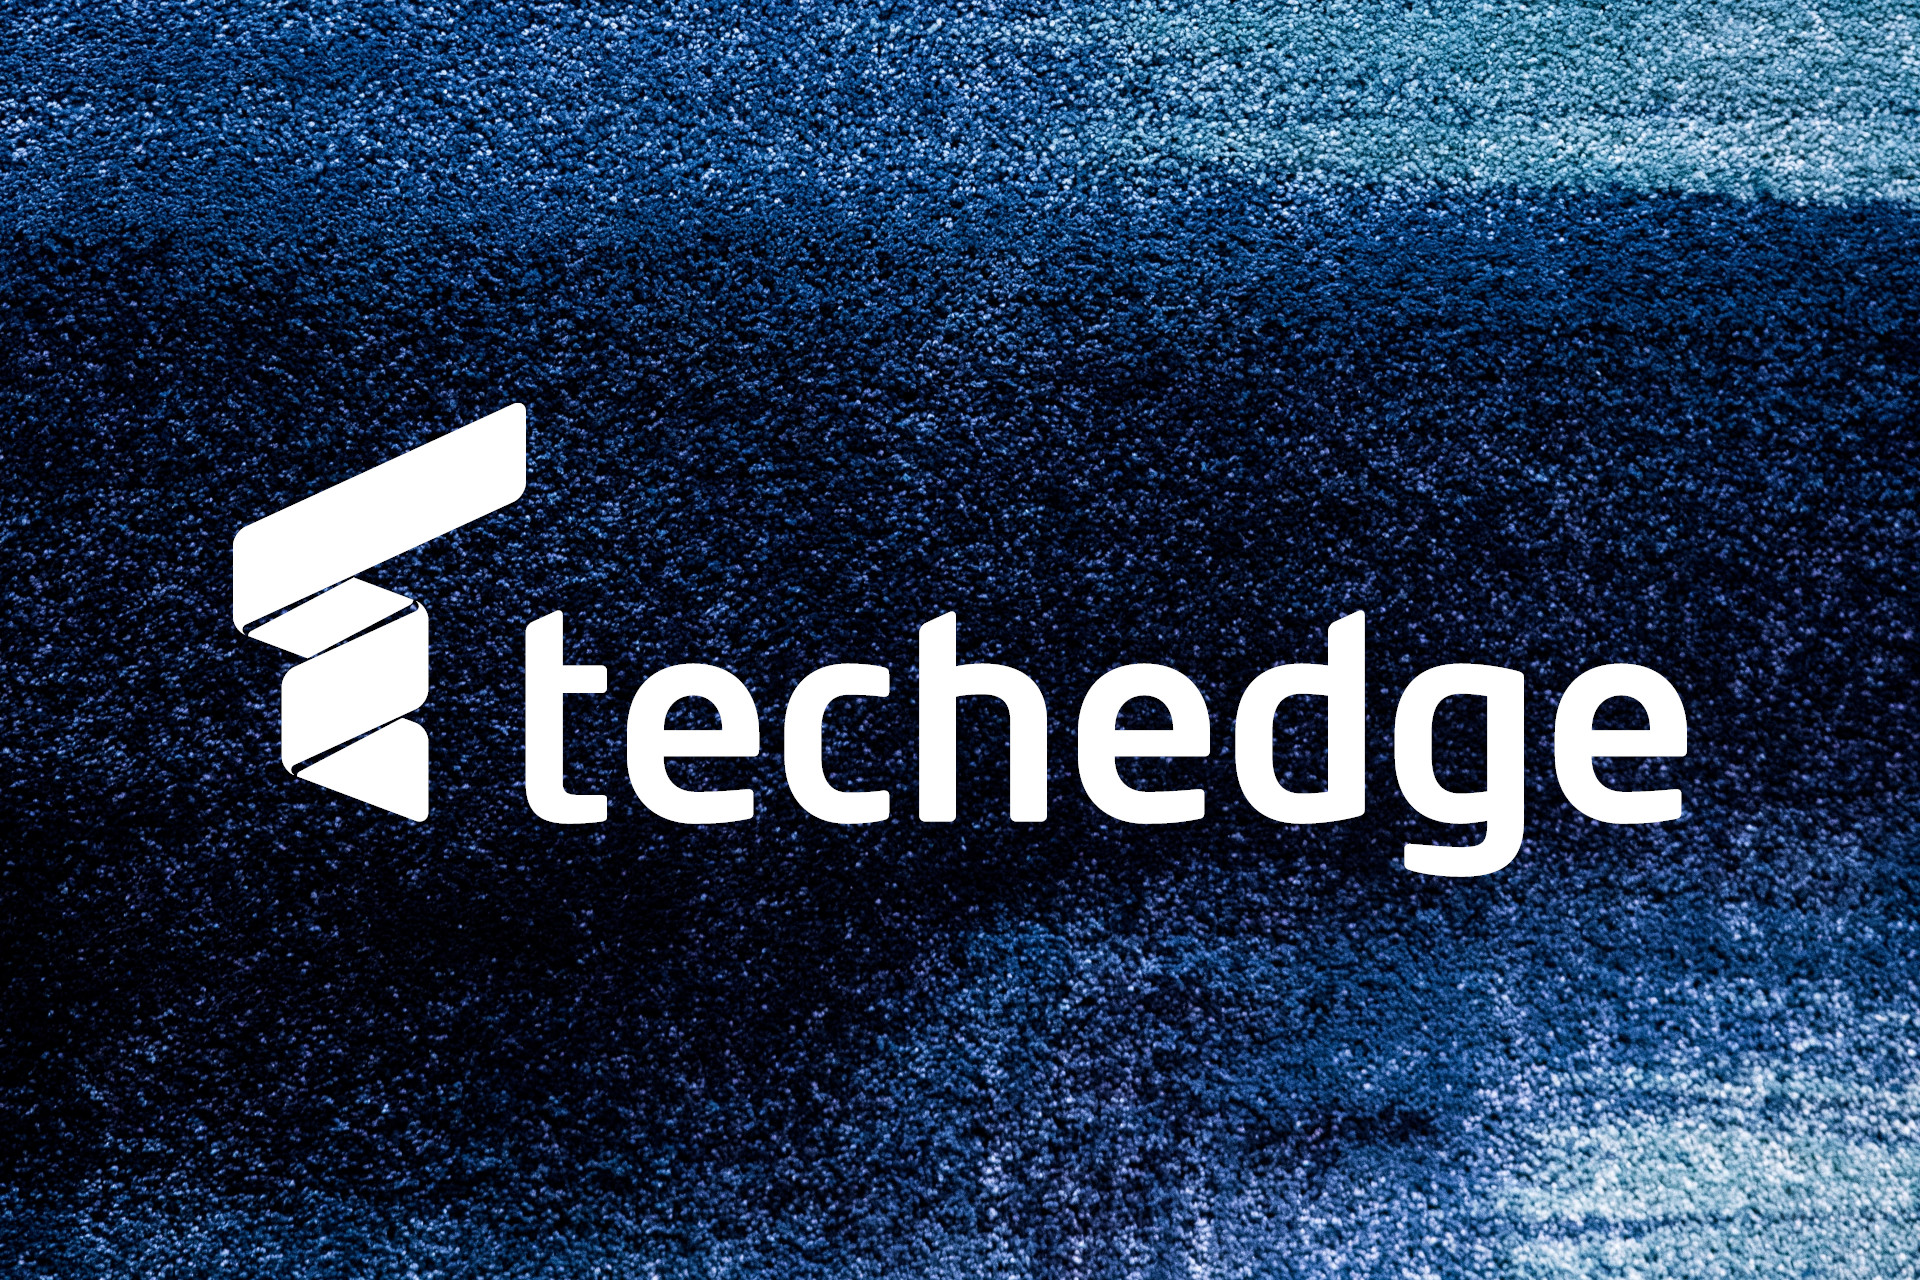 Il Gruppo Techedge nomina Vincenzo Giannelli Direttore Generale Corporate